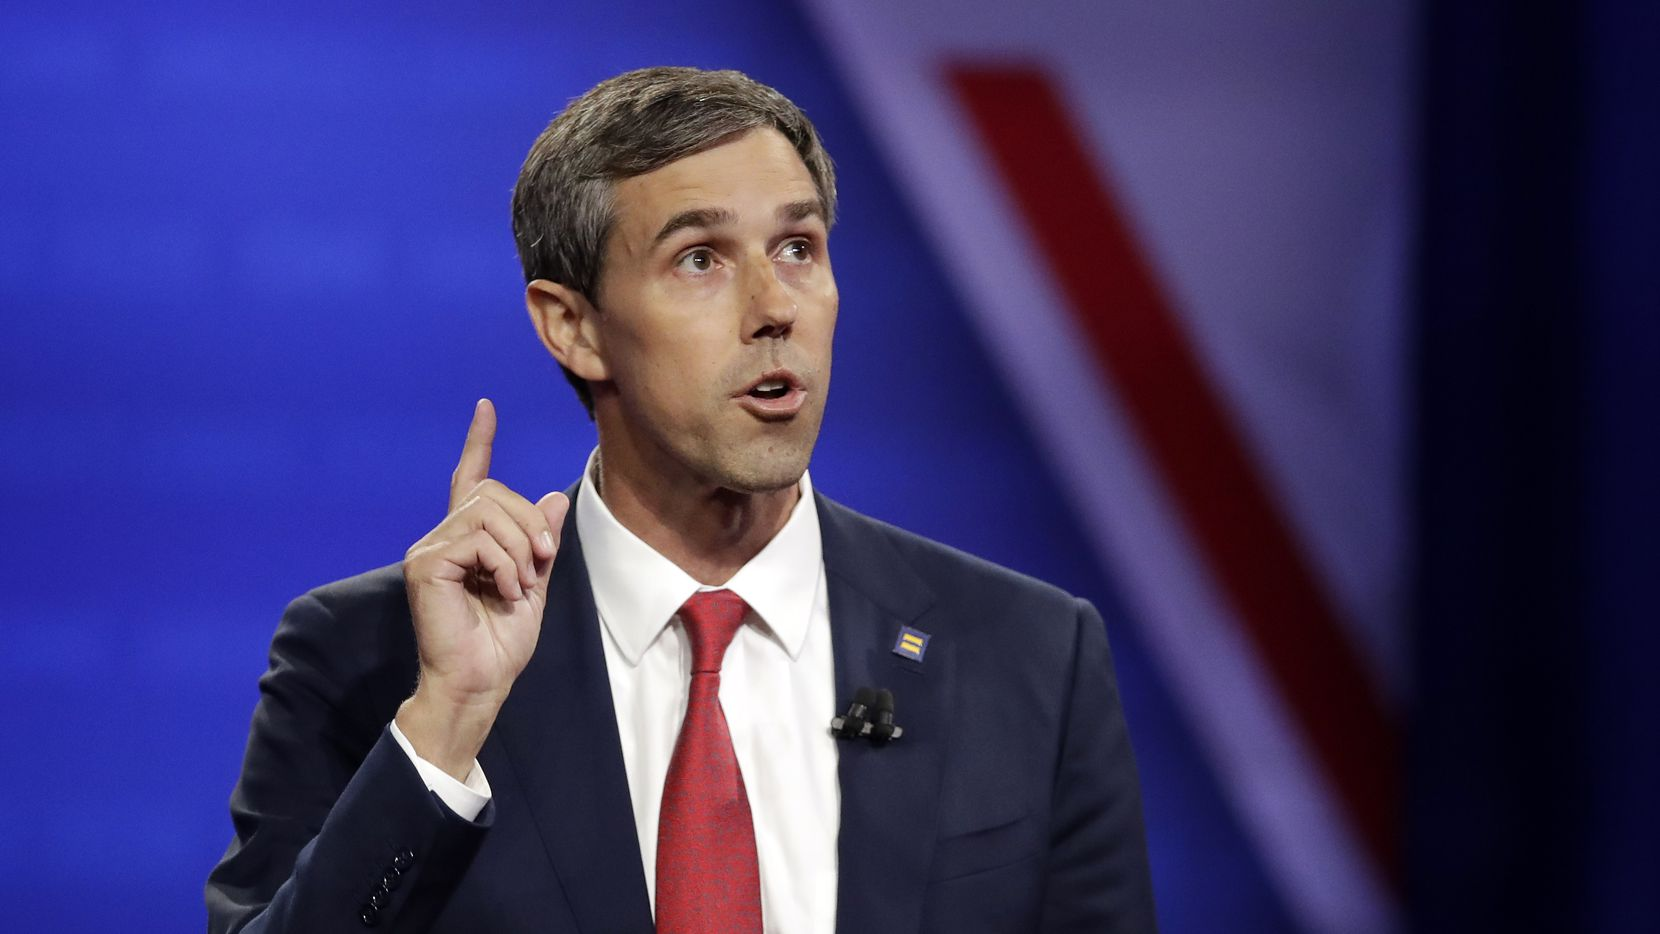 Beto O'Rourke speaks during the Power of our Pride Town Hall on Oct. 10, 2019, in Los Angeles. The LGBTQ-focused town hall featured nine 2020 Democratic presidential candidates.